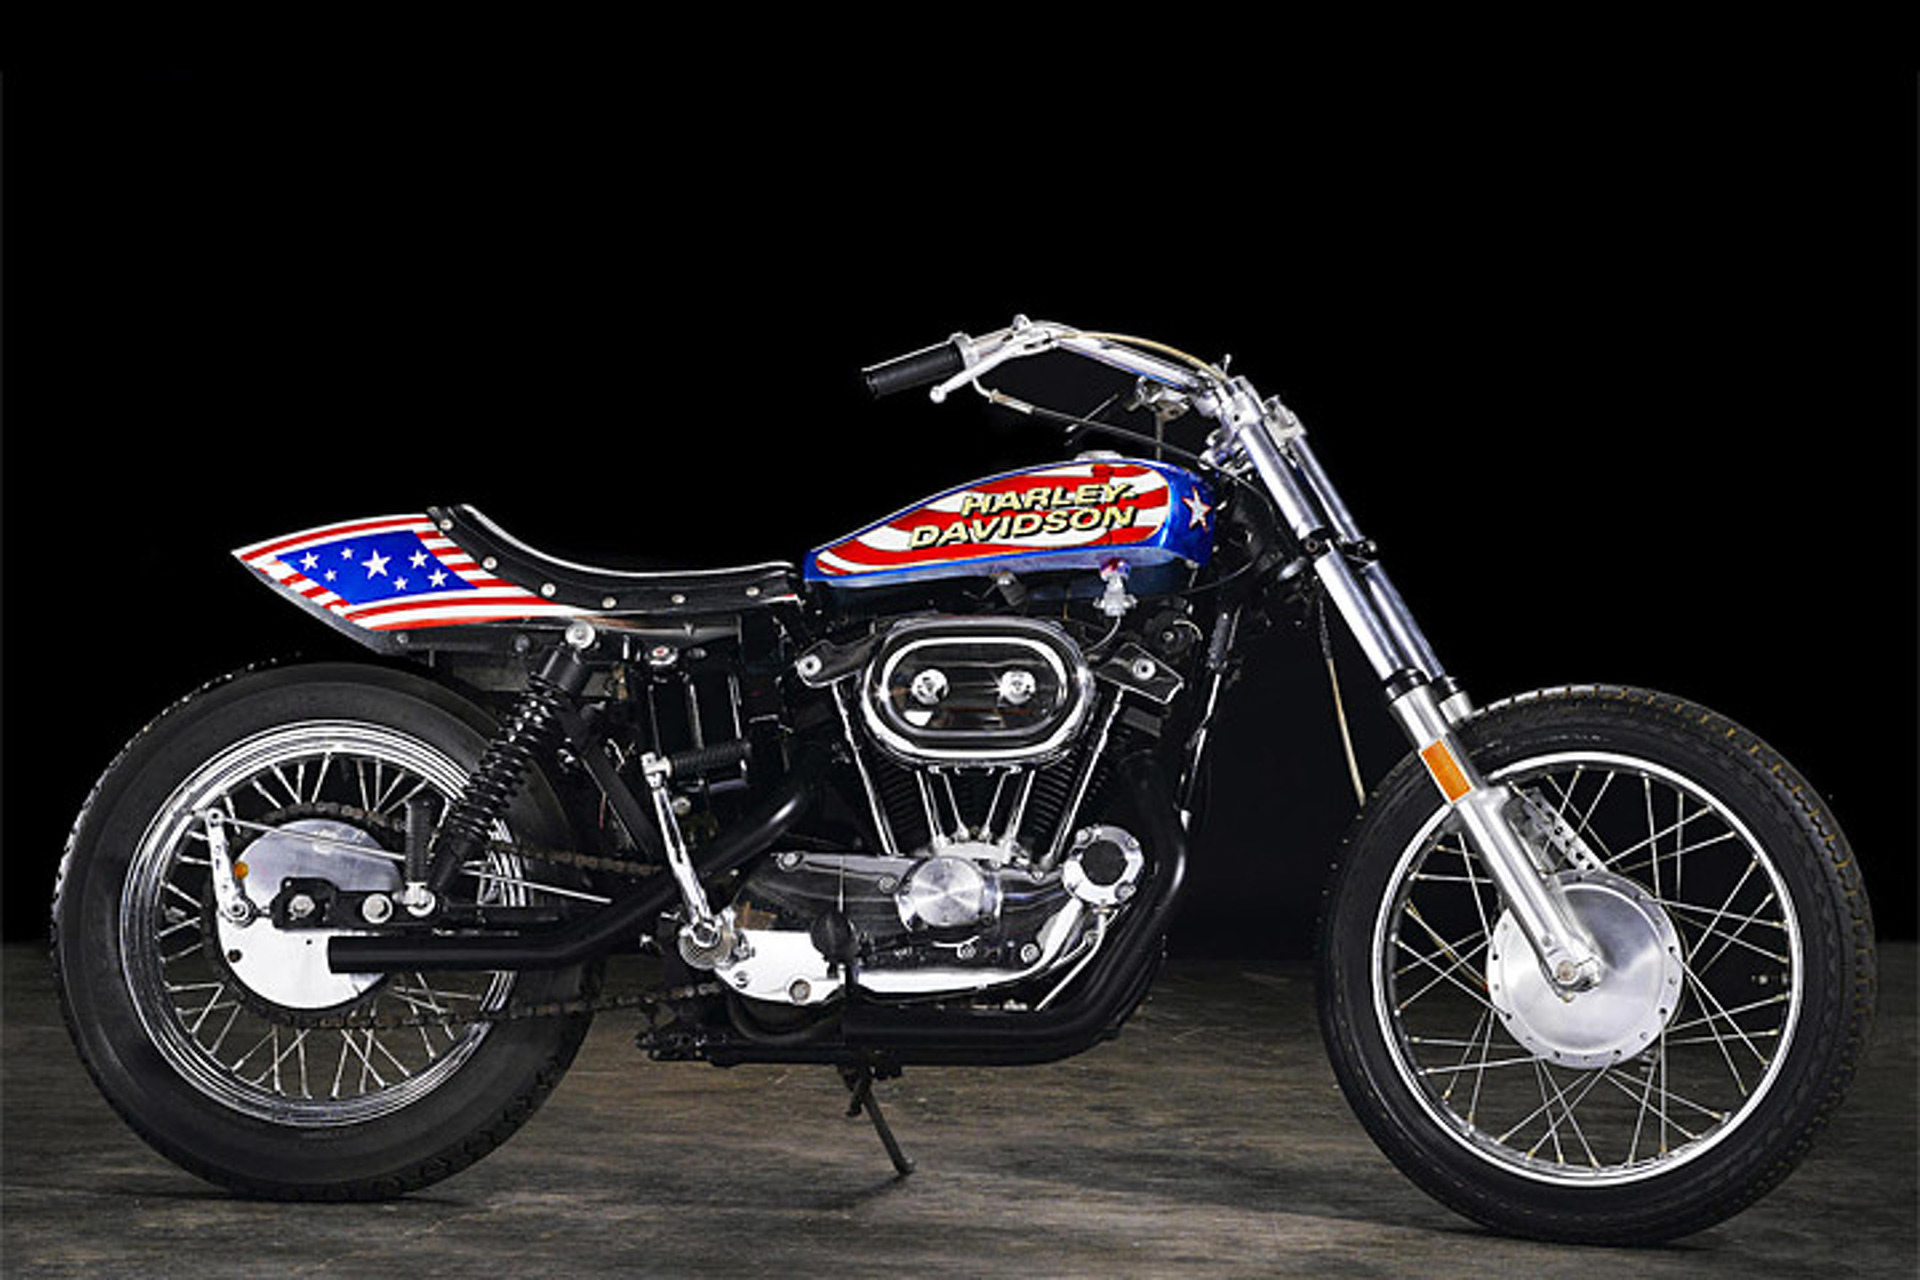 America Auto Auction >> Evel Knievel Motorcycle Heading to Auction—Just Don't Jump It!